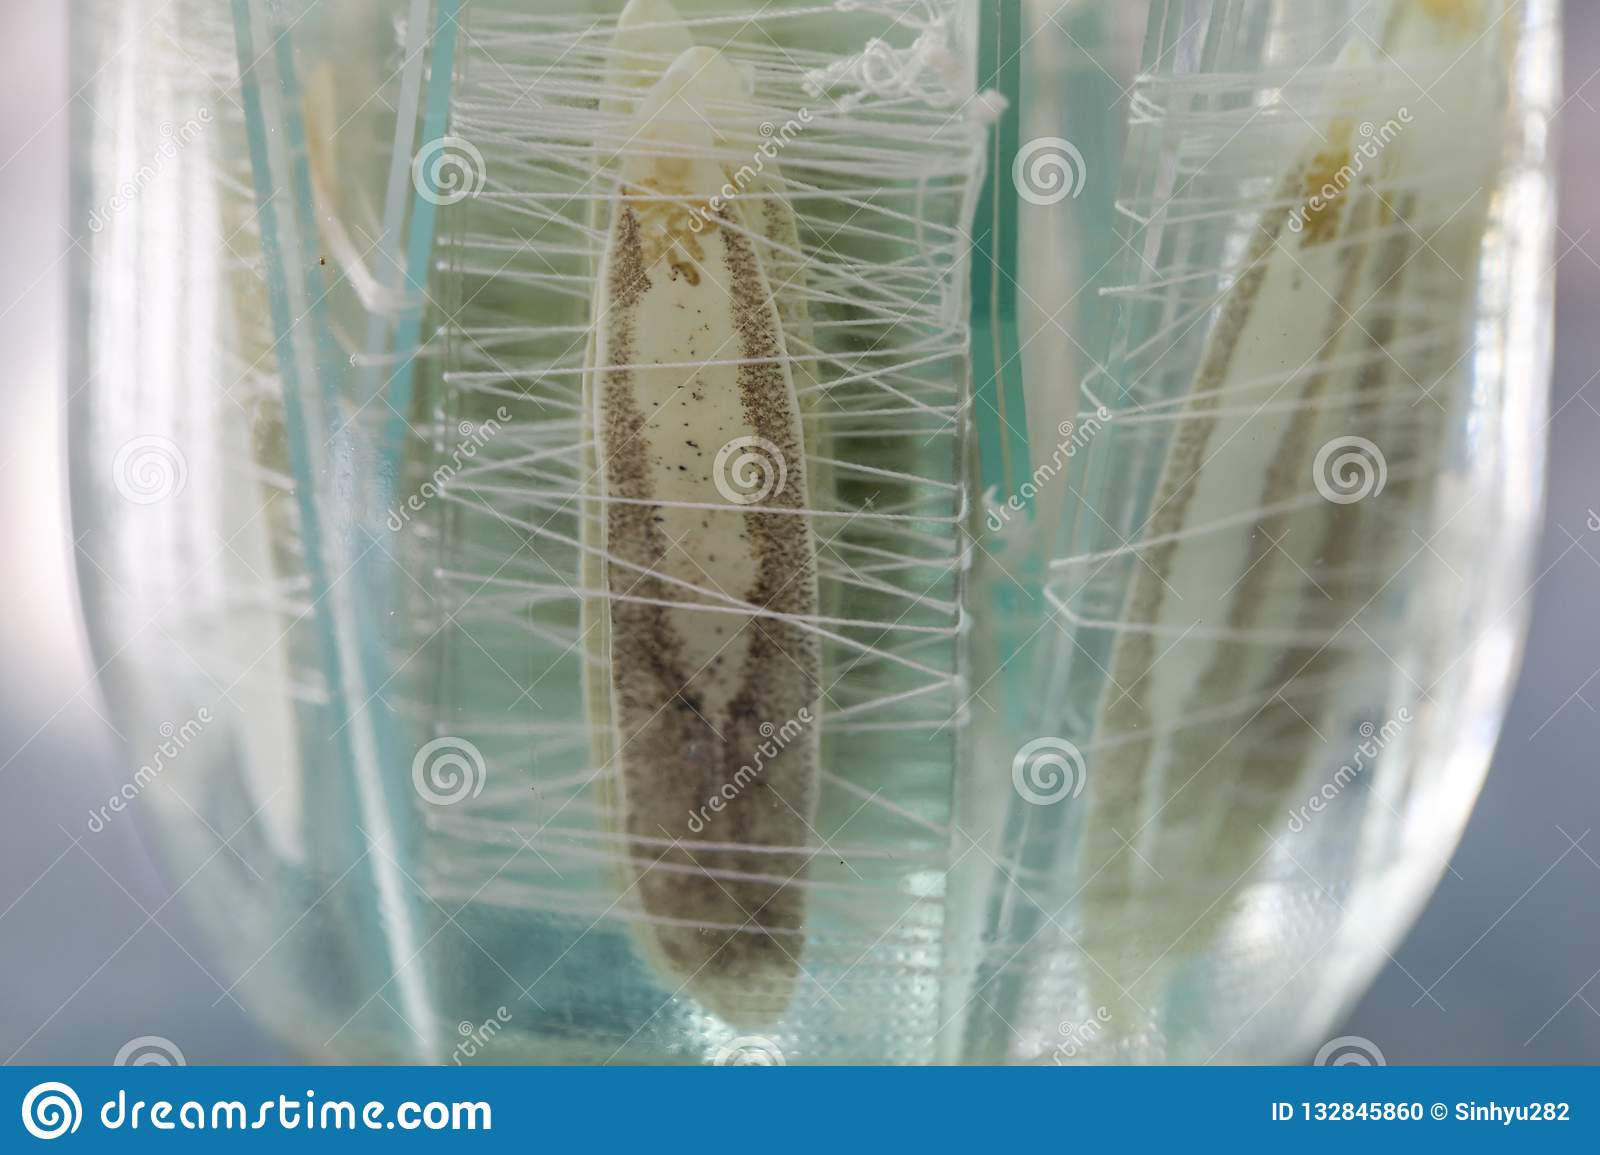 parasite or worms is a freshwater fish parasite in laboratory for